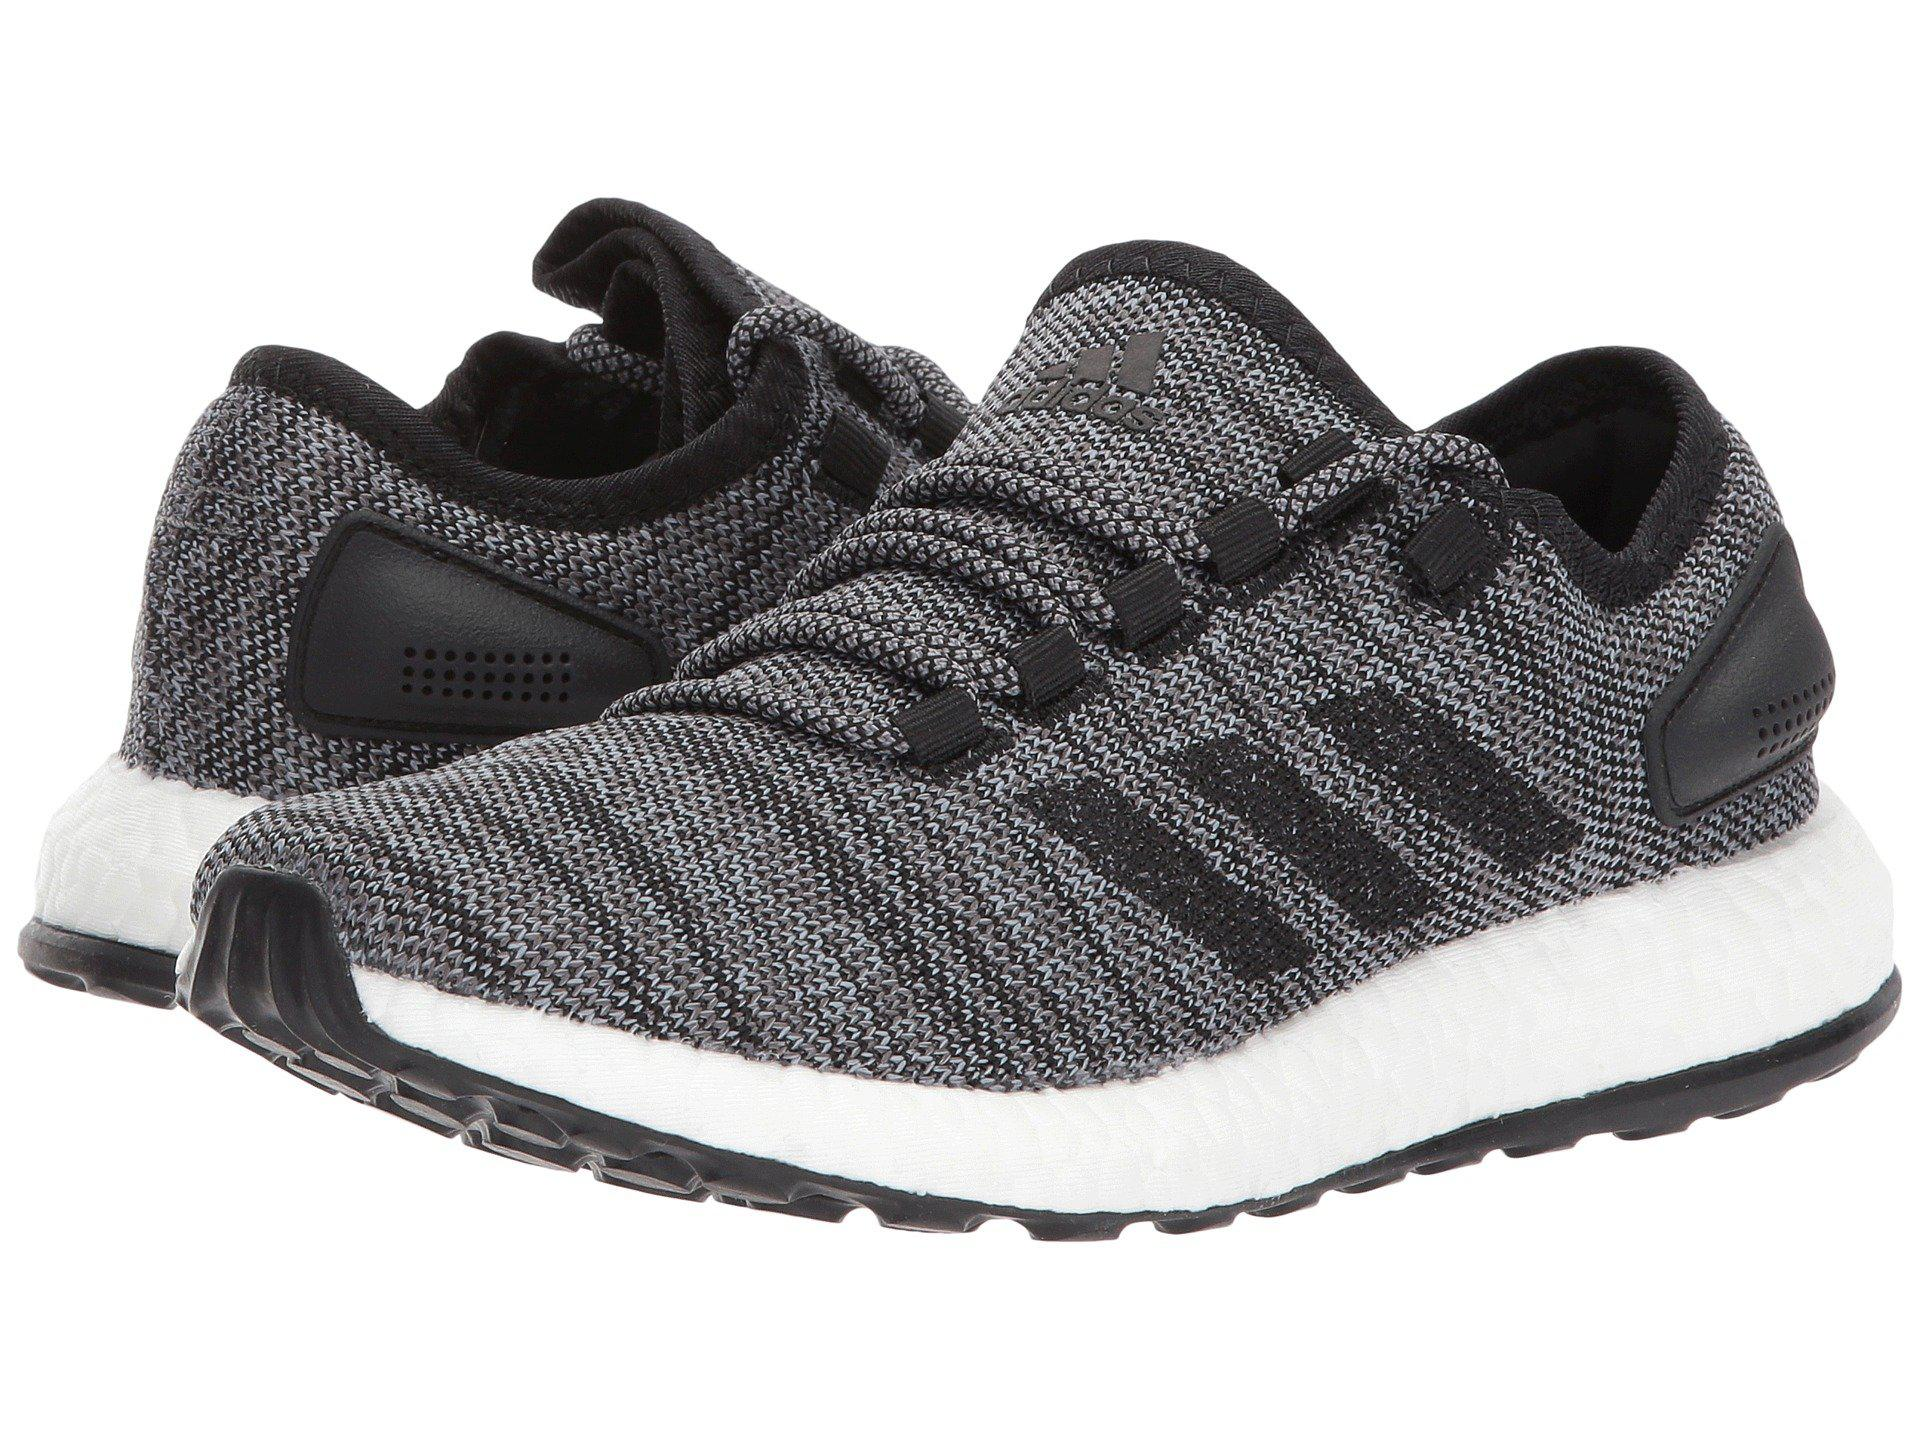 3be5def0e Lyst - Adidas Pureboost All Terrain in Black for Men